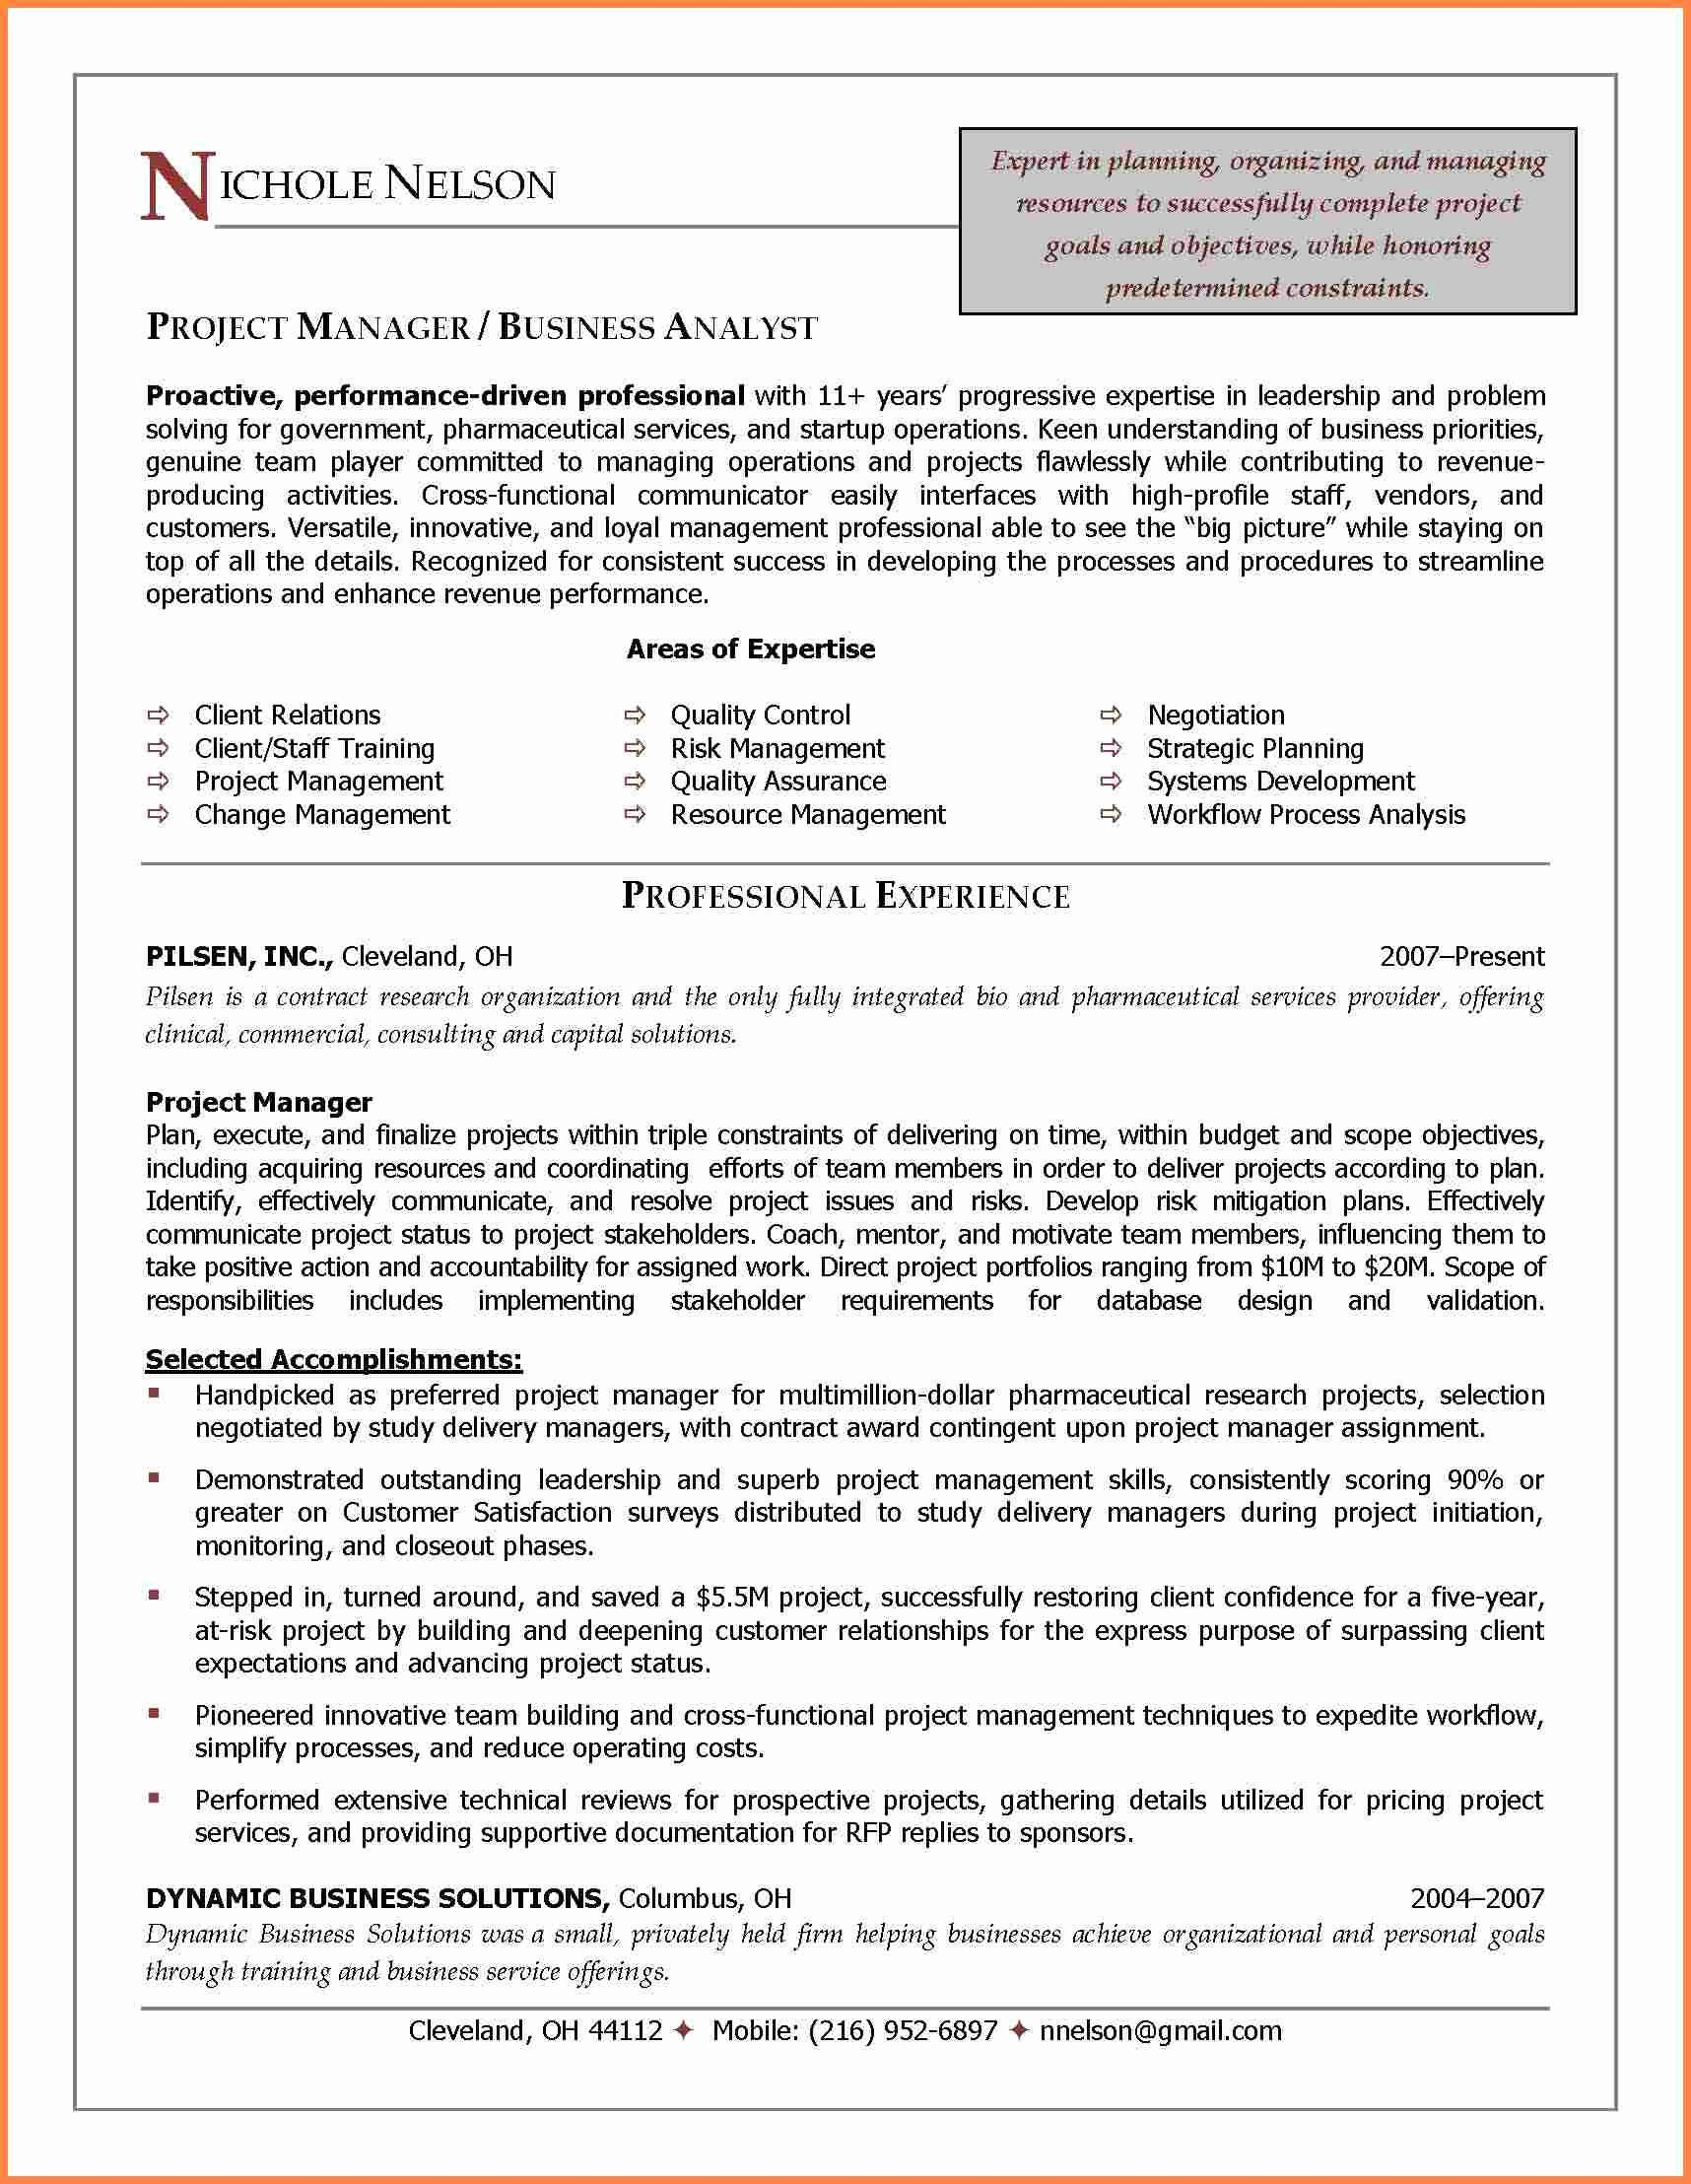 Project Management Contract Template Elegant 10 Construction Project Management Agreement Templ Business Analyst Resume Project Manager Resume Business Analyst